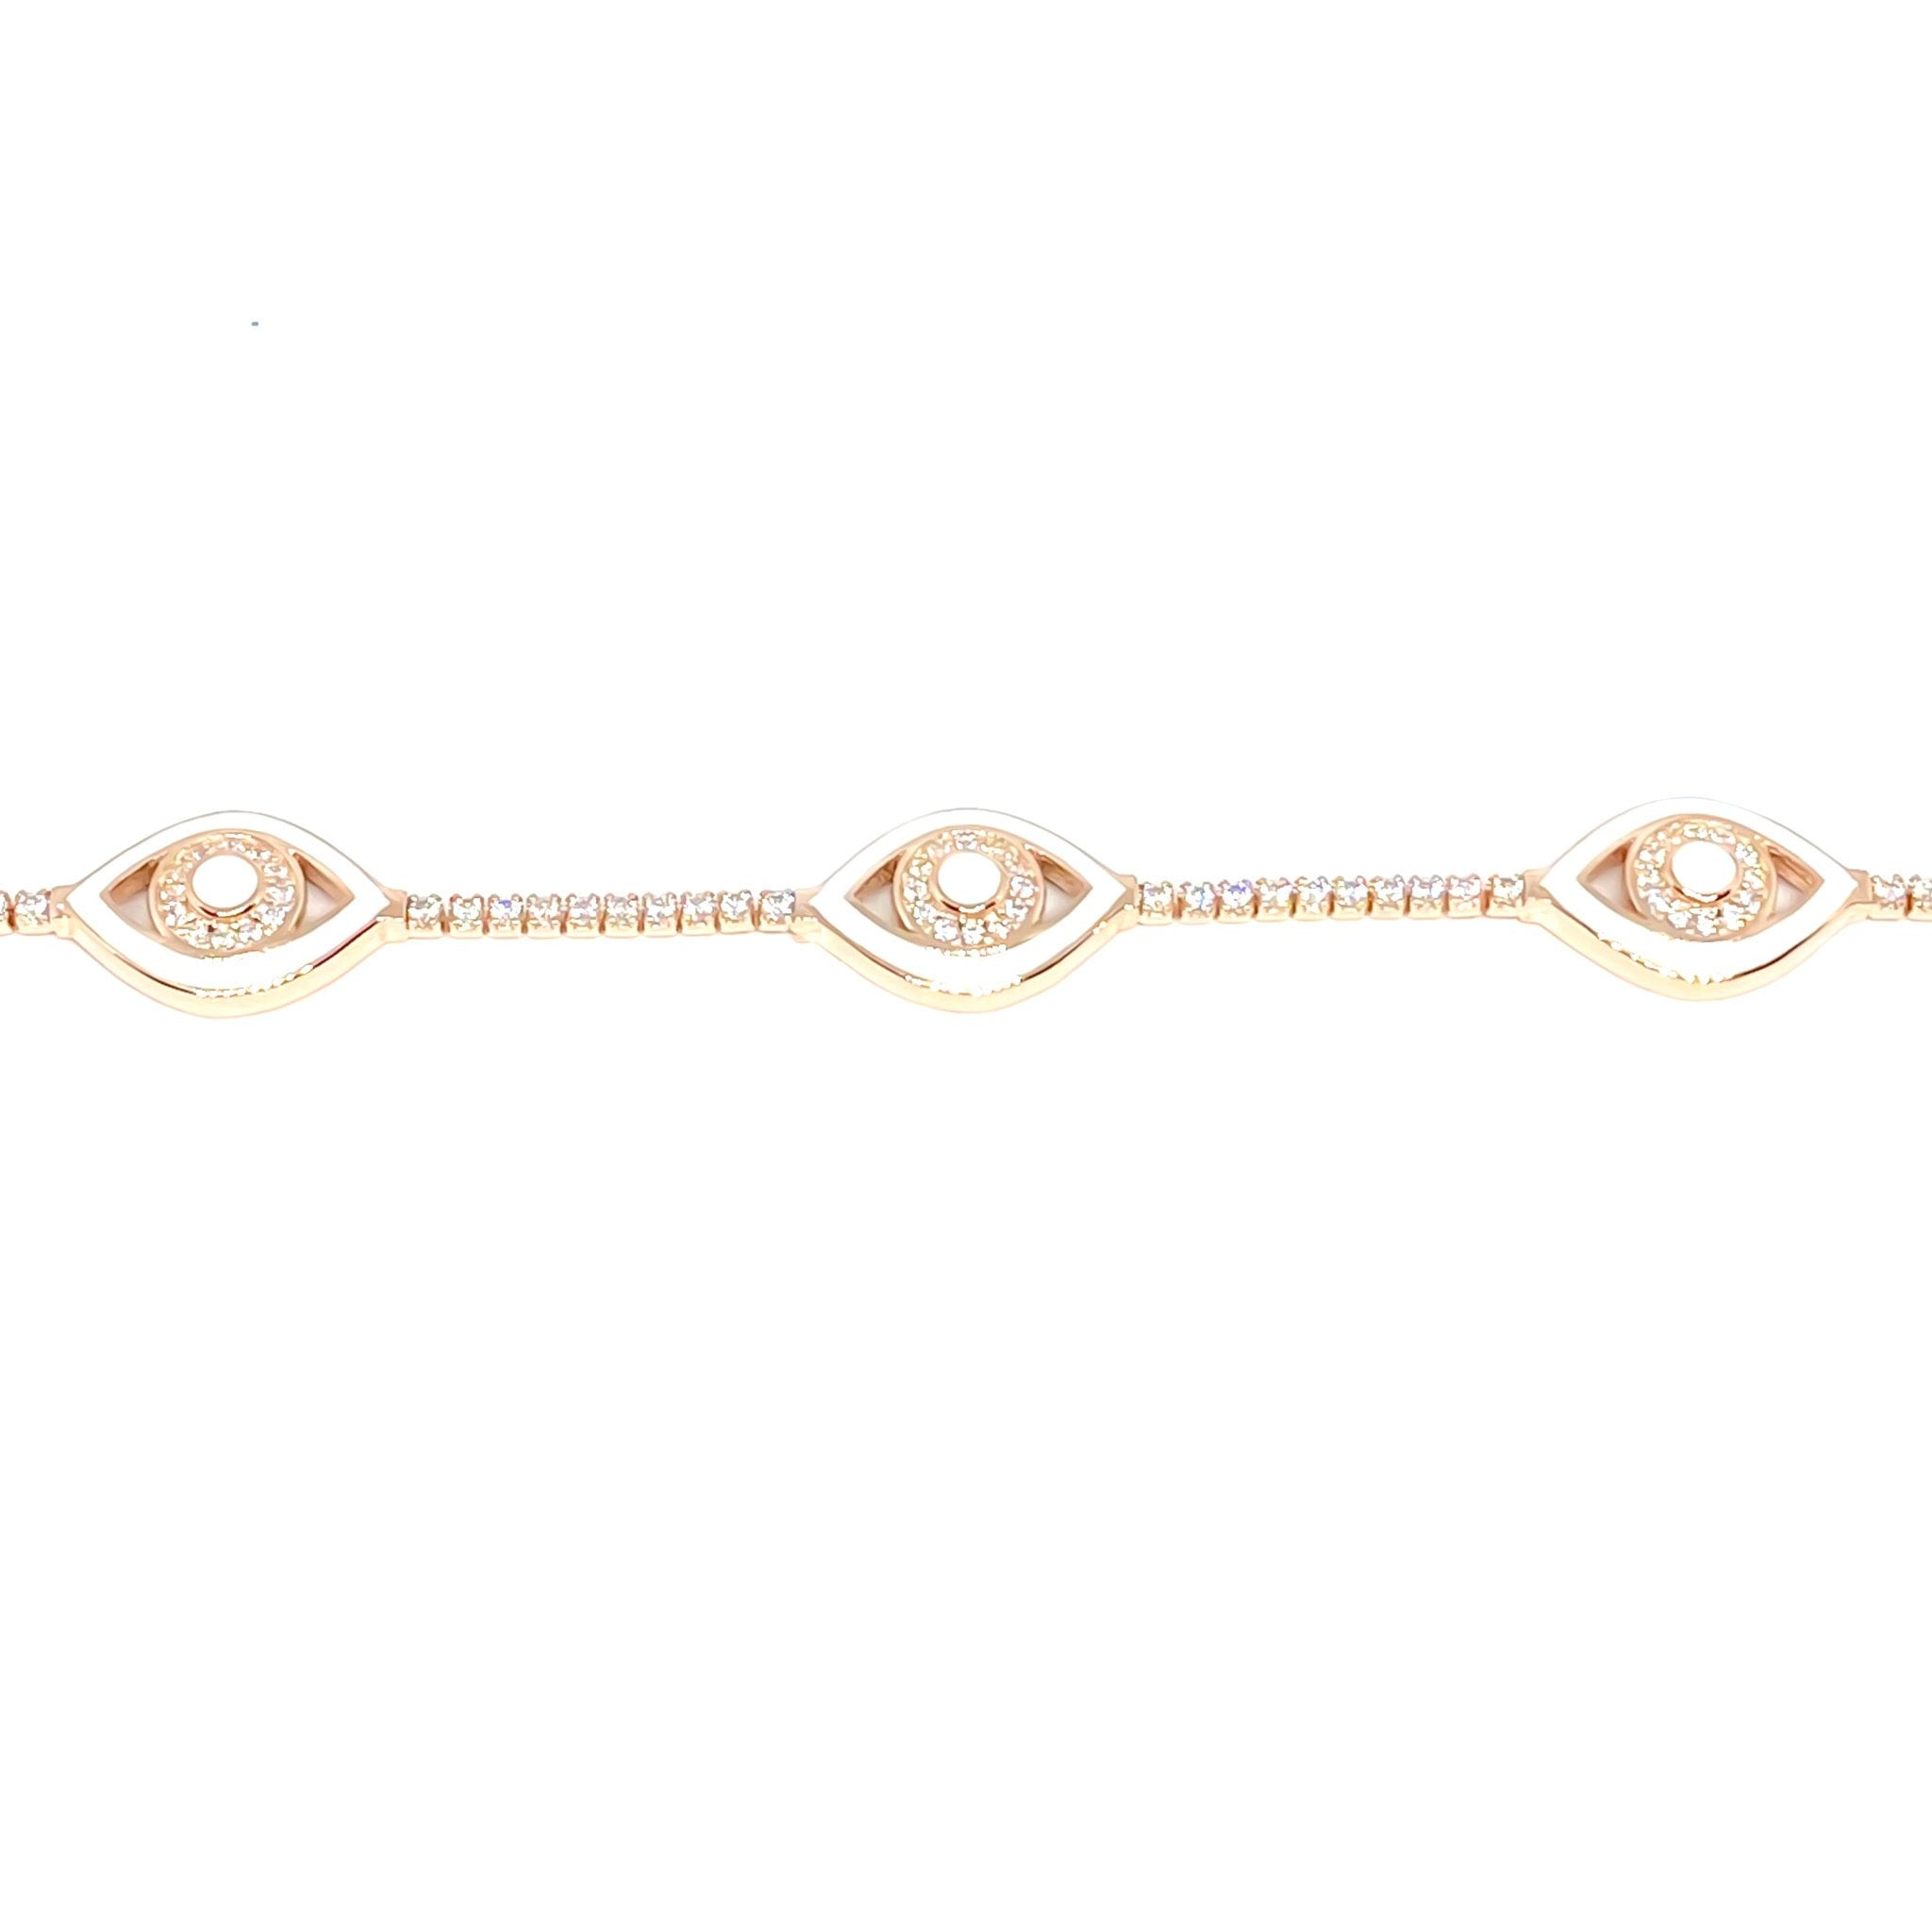 White Enamel 3 Eye Tennis Bracelet